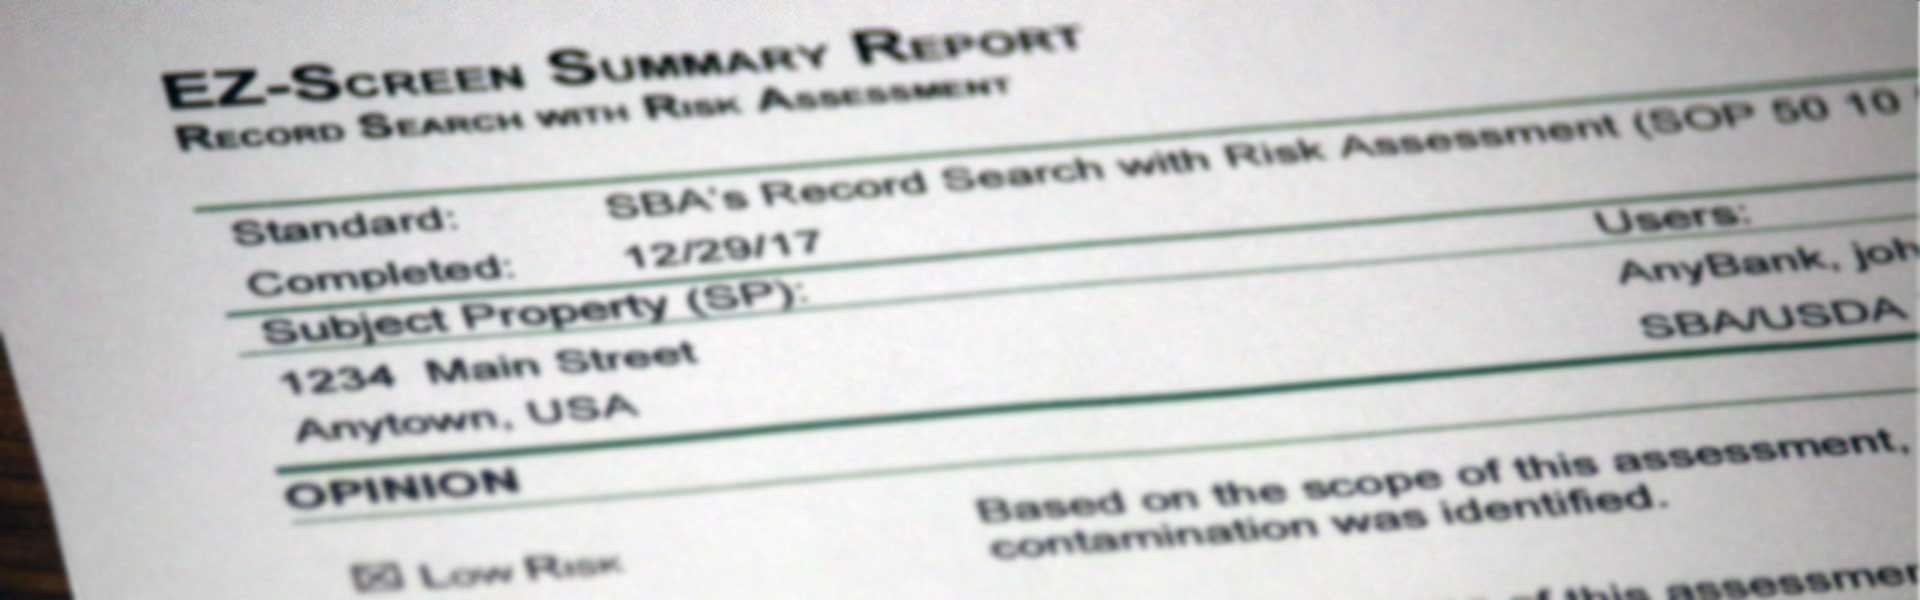 Records Search with Risk Assessment